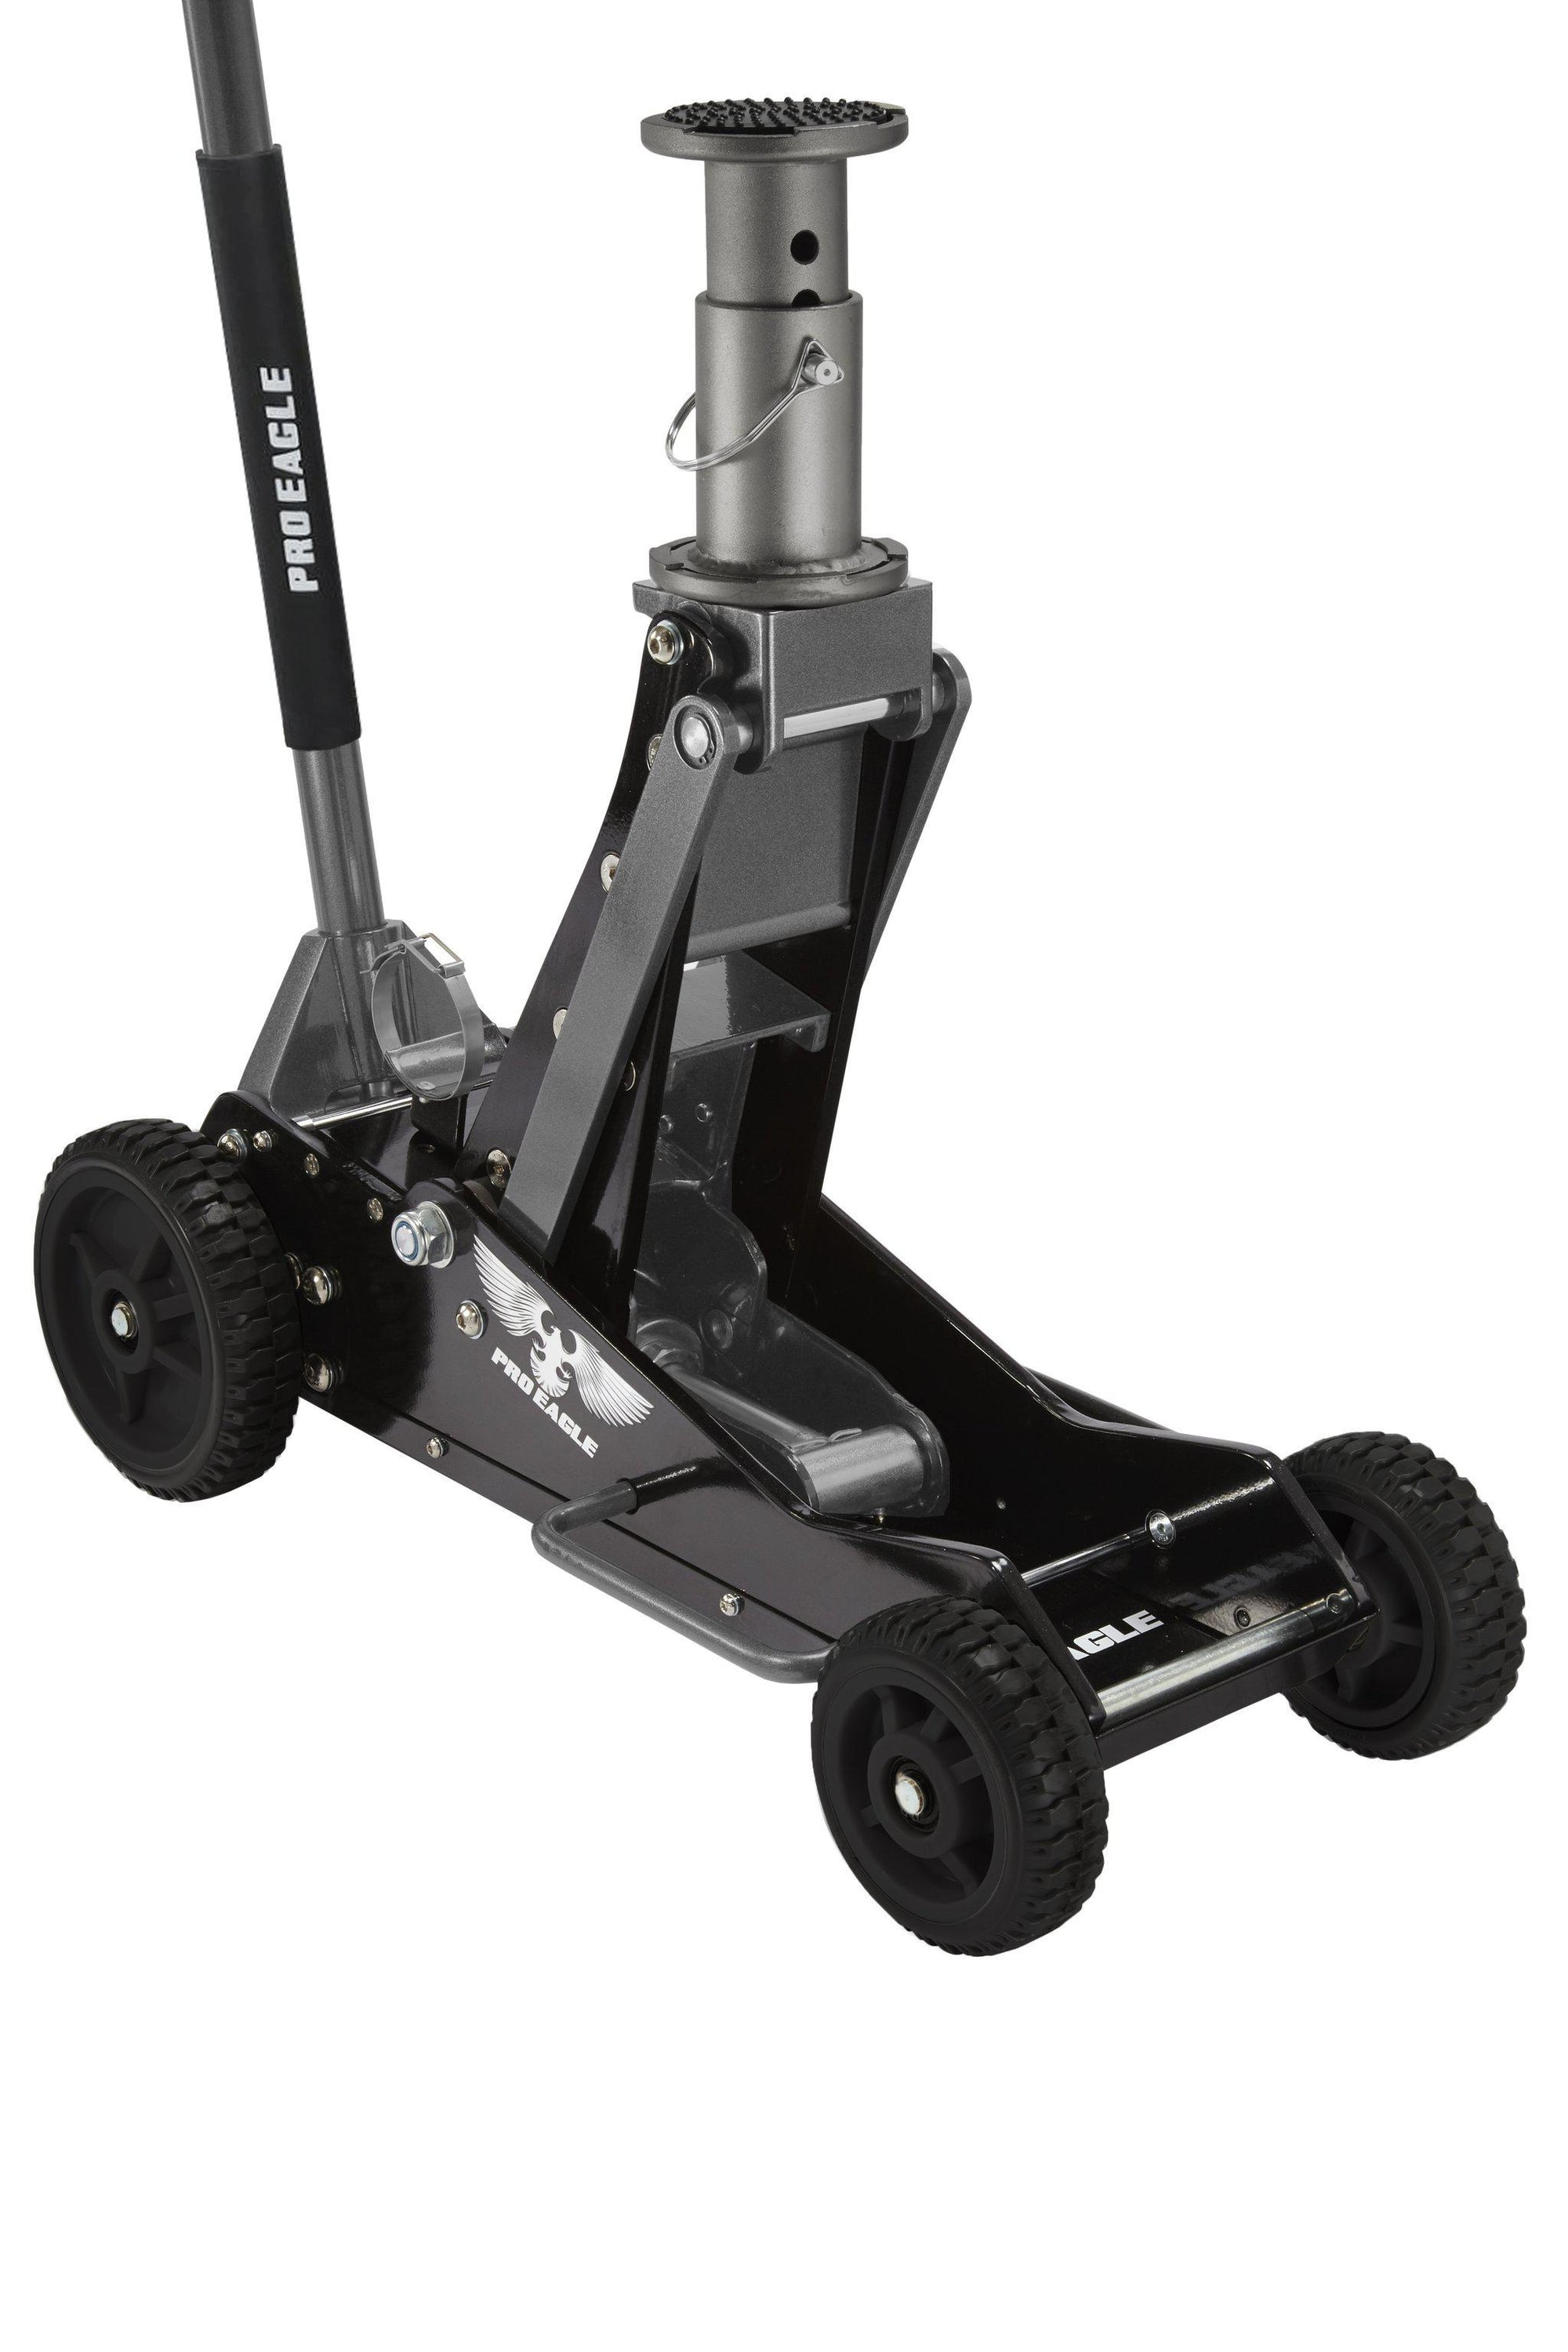 Pro Eagle The Beast 2 Ton Big Wheel Off Road Jack-Jack-Pro Eagle-Black Market UTV